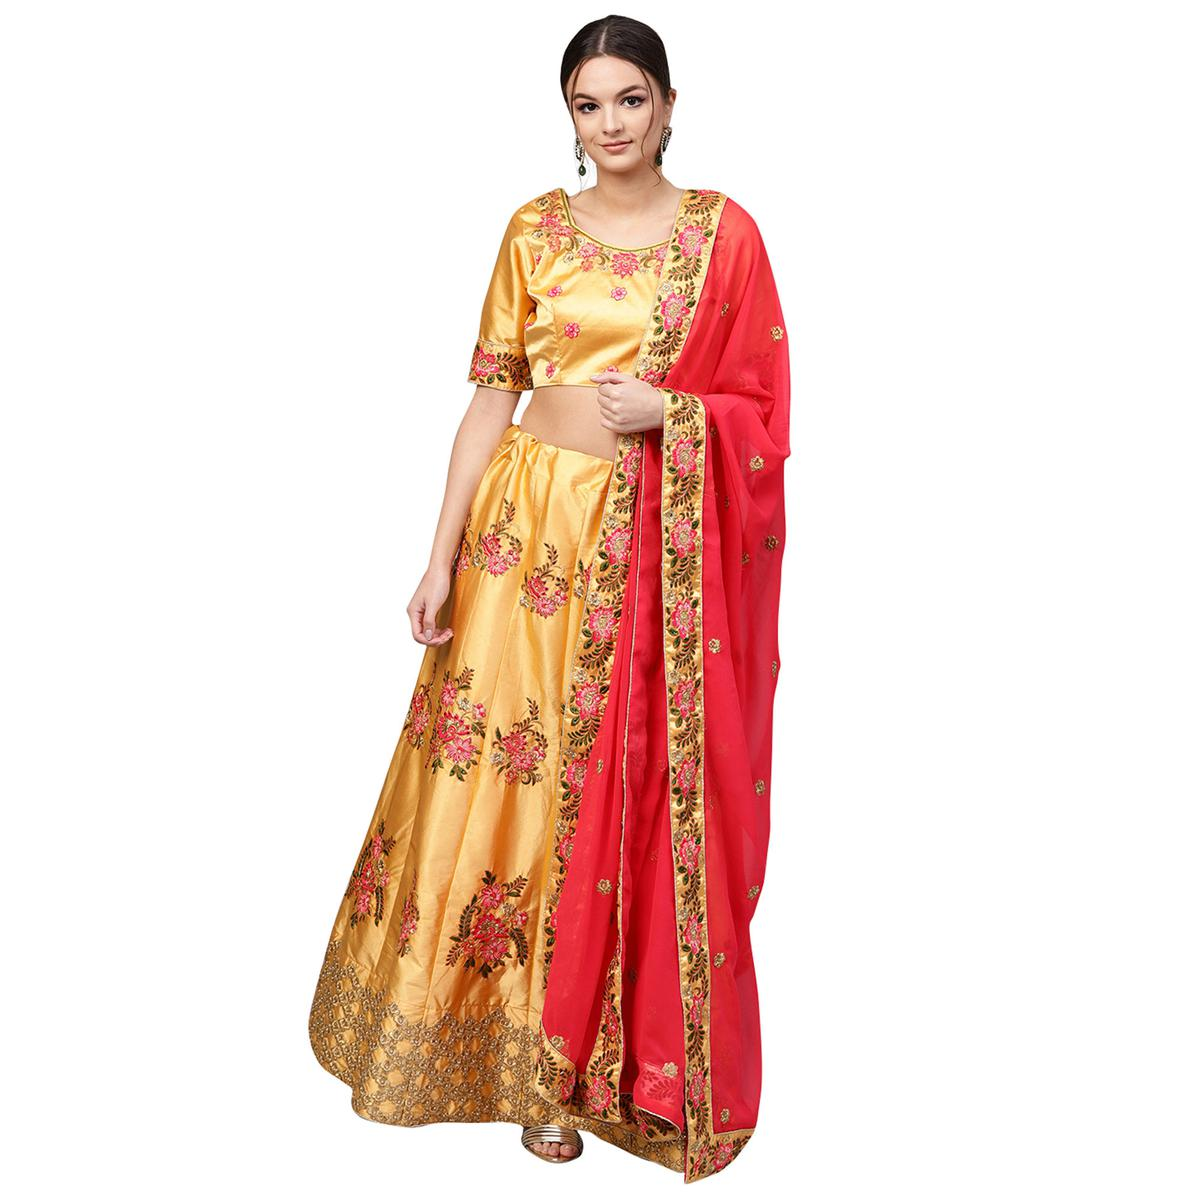 Marvellous Yellow Colored Partywear Embroidered Satin Lehenga Choli